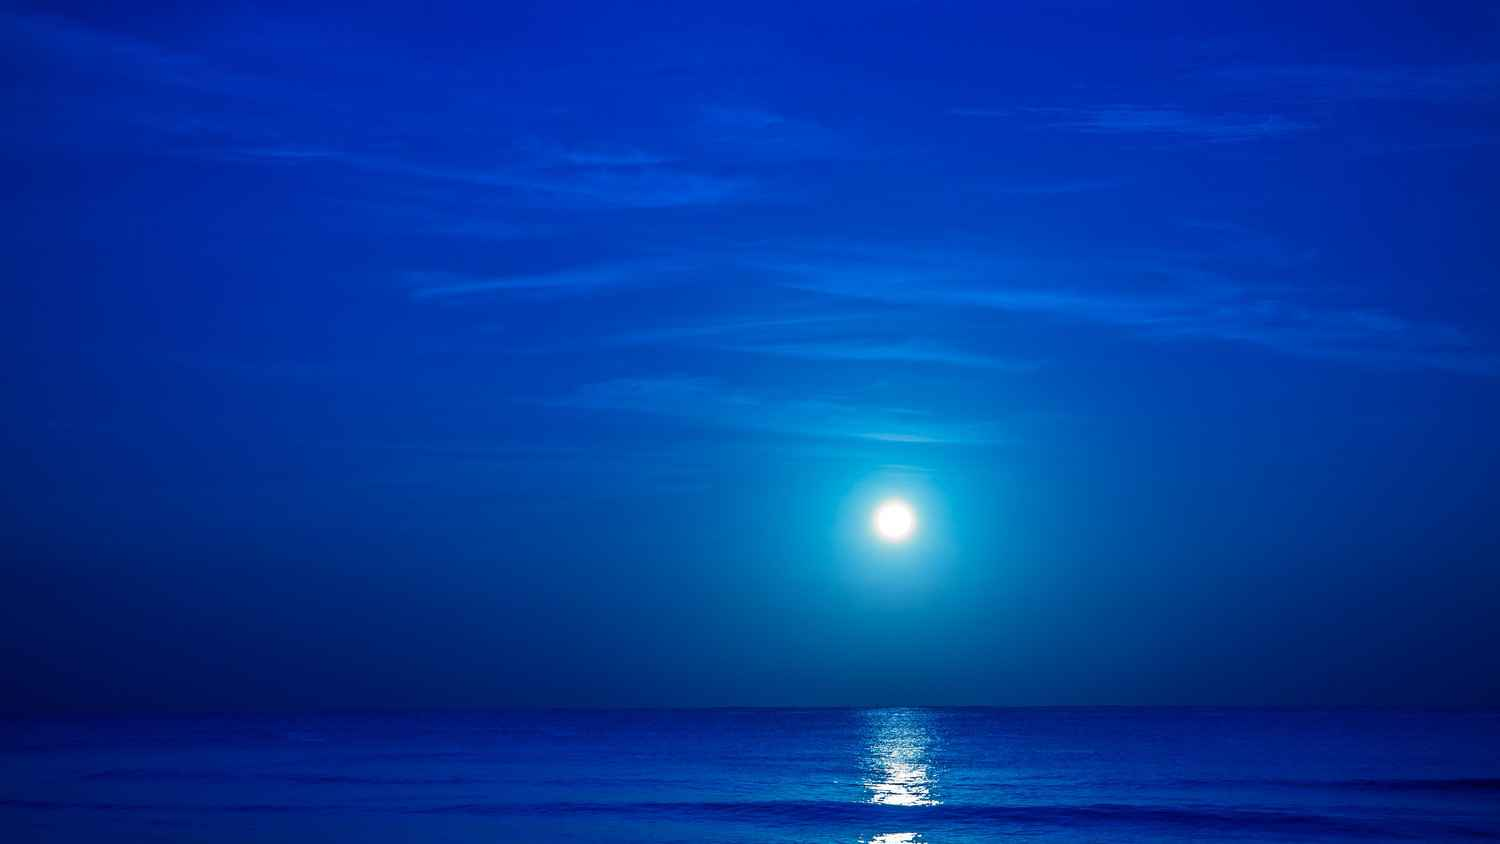 The beautiful moonlight reflecting off of the ocean near the Playa Del Carmen beach.